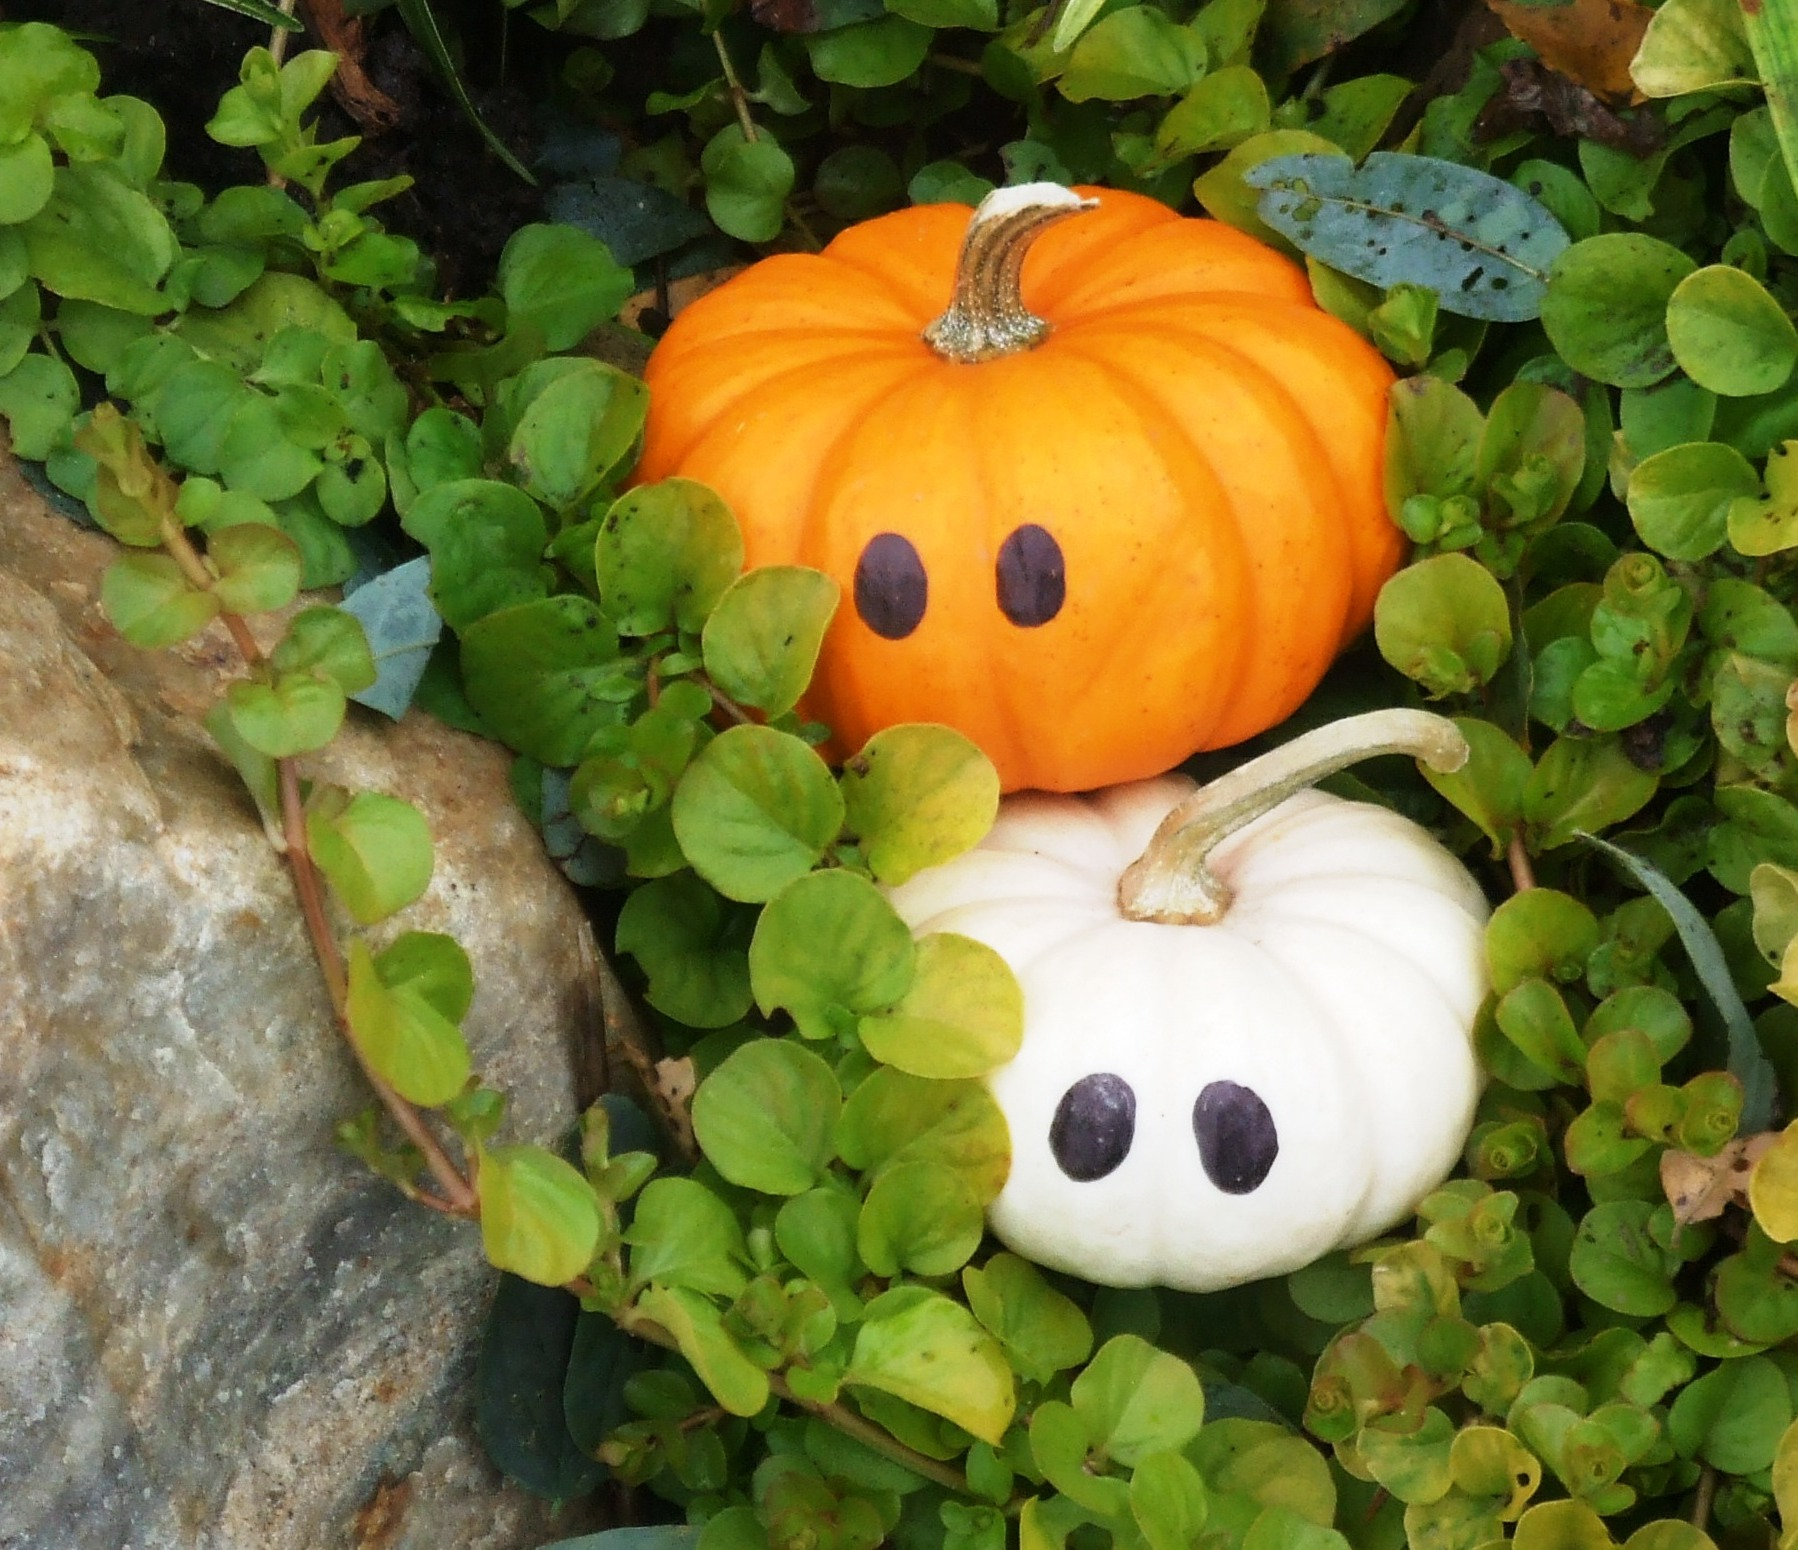 Hanging Pictures On Walls Without Nails 100 Use White Pumpkins To Decorate How To Make A Pumpkin